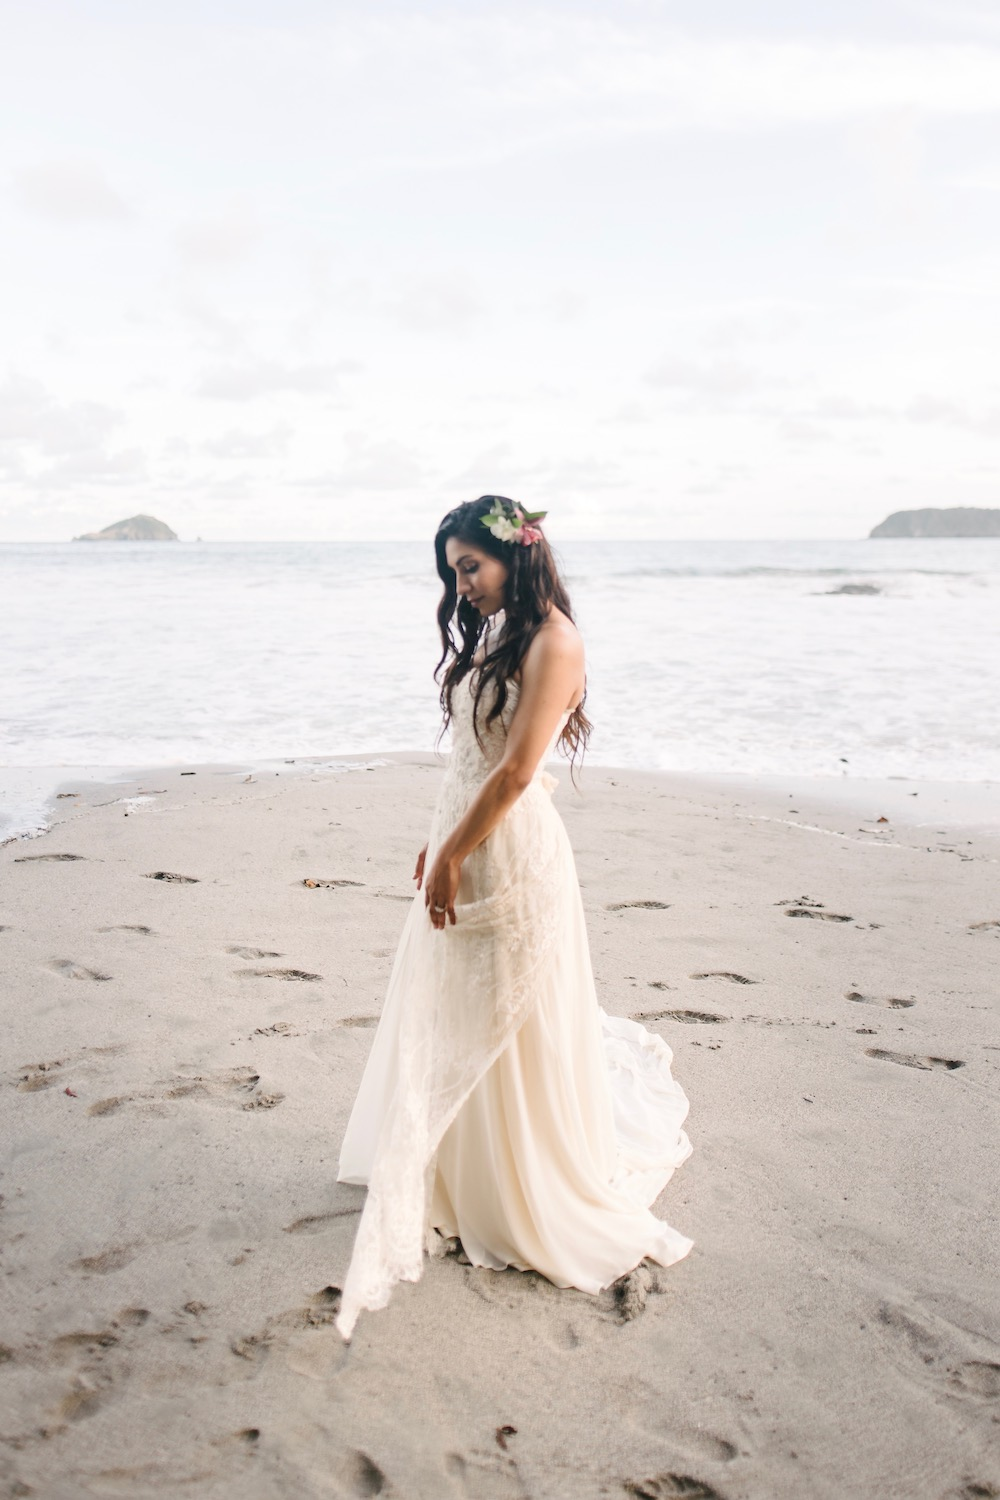 Tropical beach wedding in a beaded wedding dress